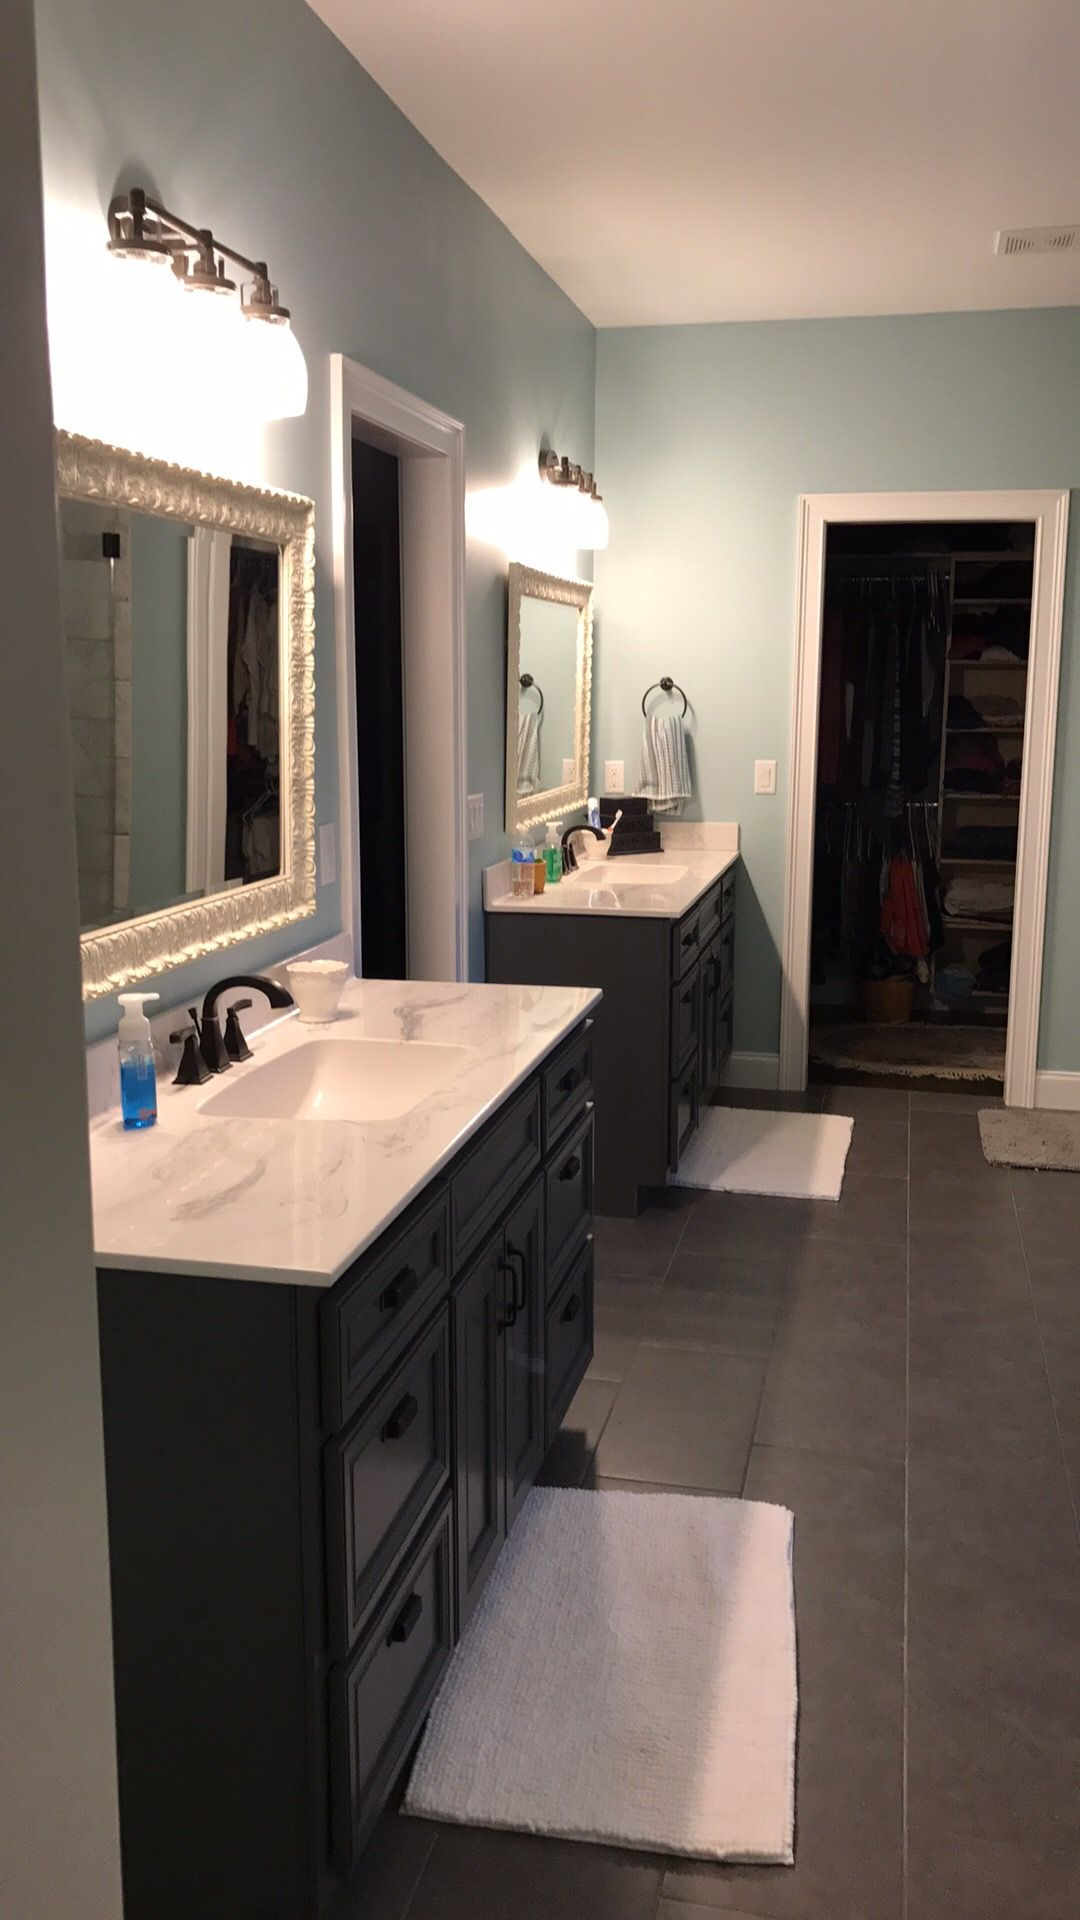 Cabinets Are Sherwin Williams Peppercorn Wall Color Is Sherwin Williams Watery Blue Kitchen Designs Kitchen And Bath Pantry Interior